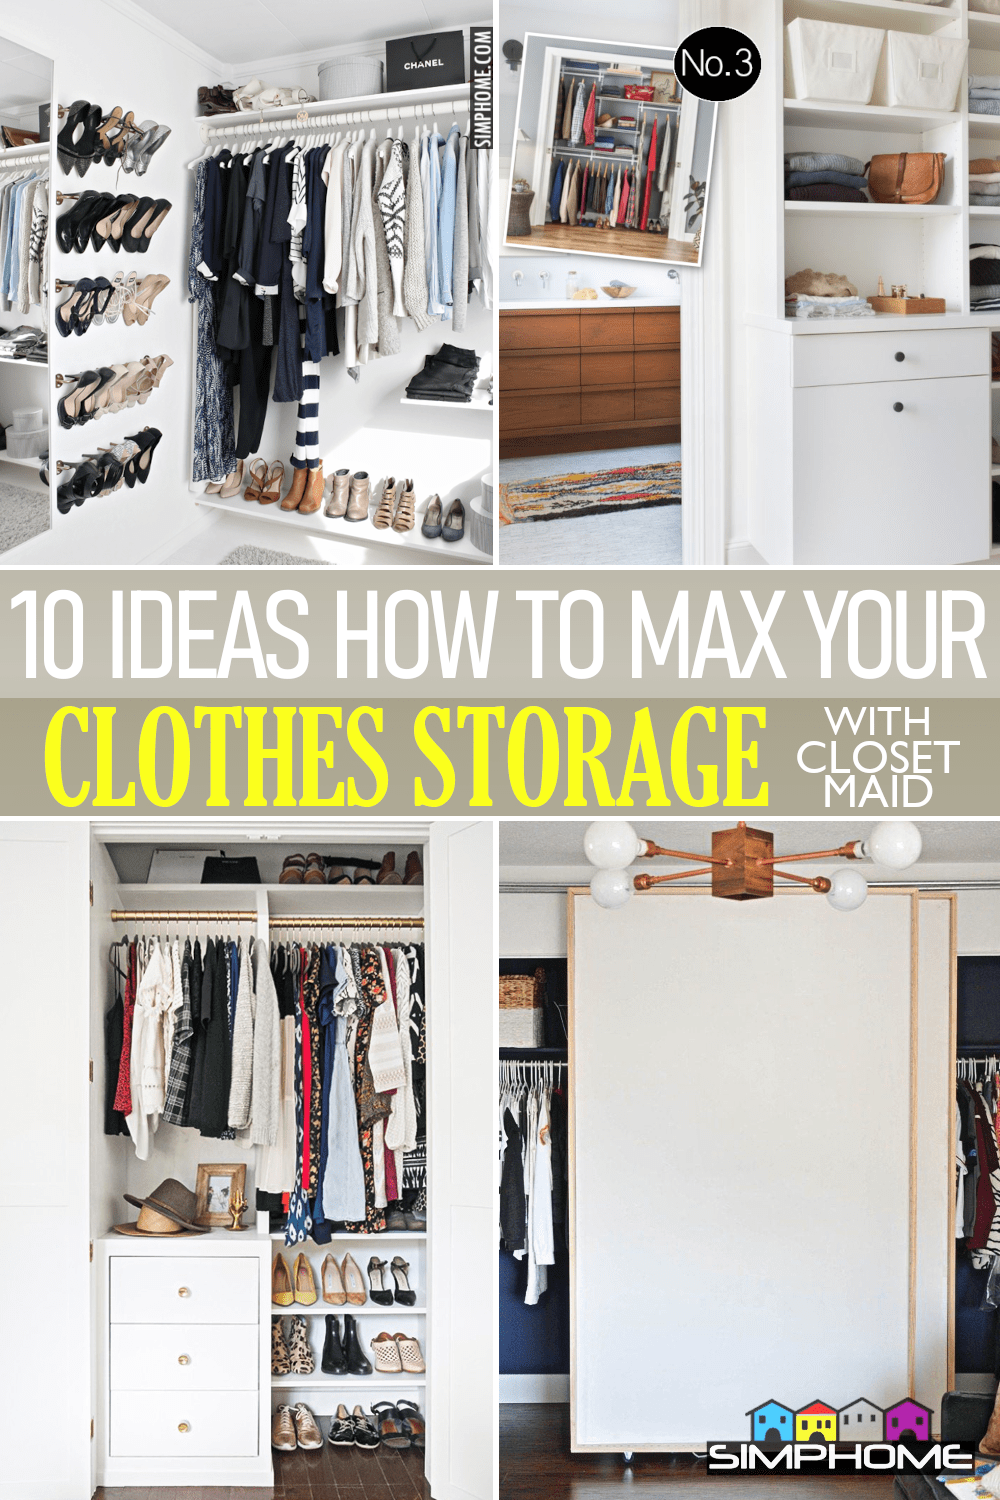 10 Ideas How to Max Your Clothes Storage with ClosetMaids via Simphome.comFeatured